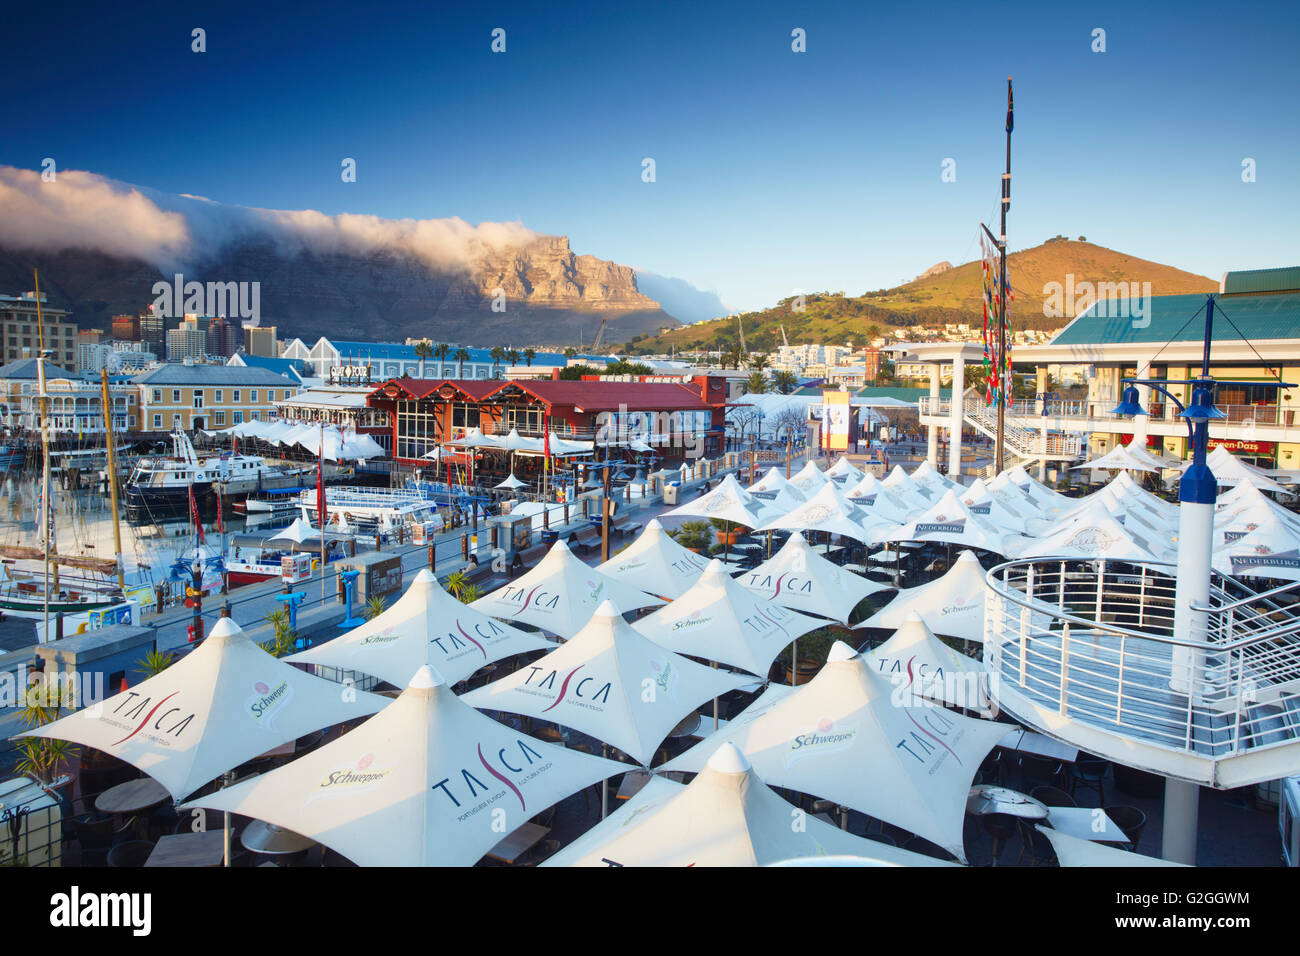 Victoria and Alfred Waterfront at dawn, Cape Town, Western Cape, South Africa - Stock Image